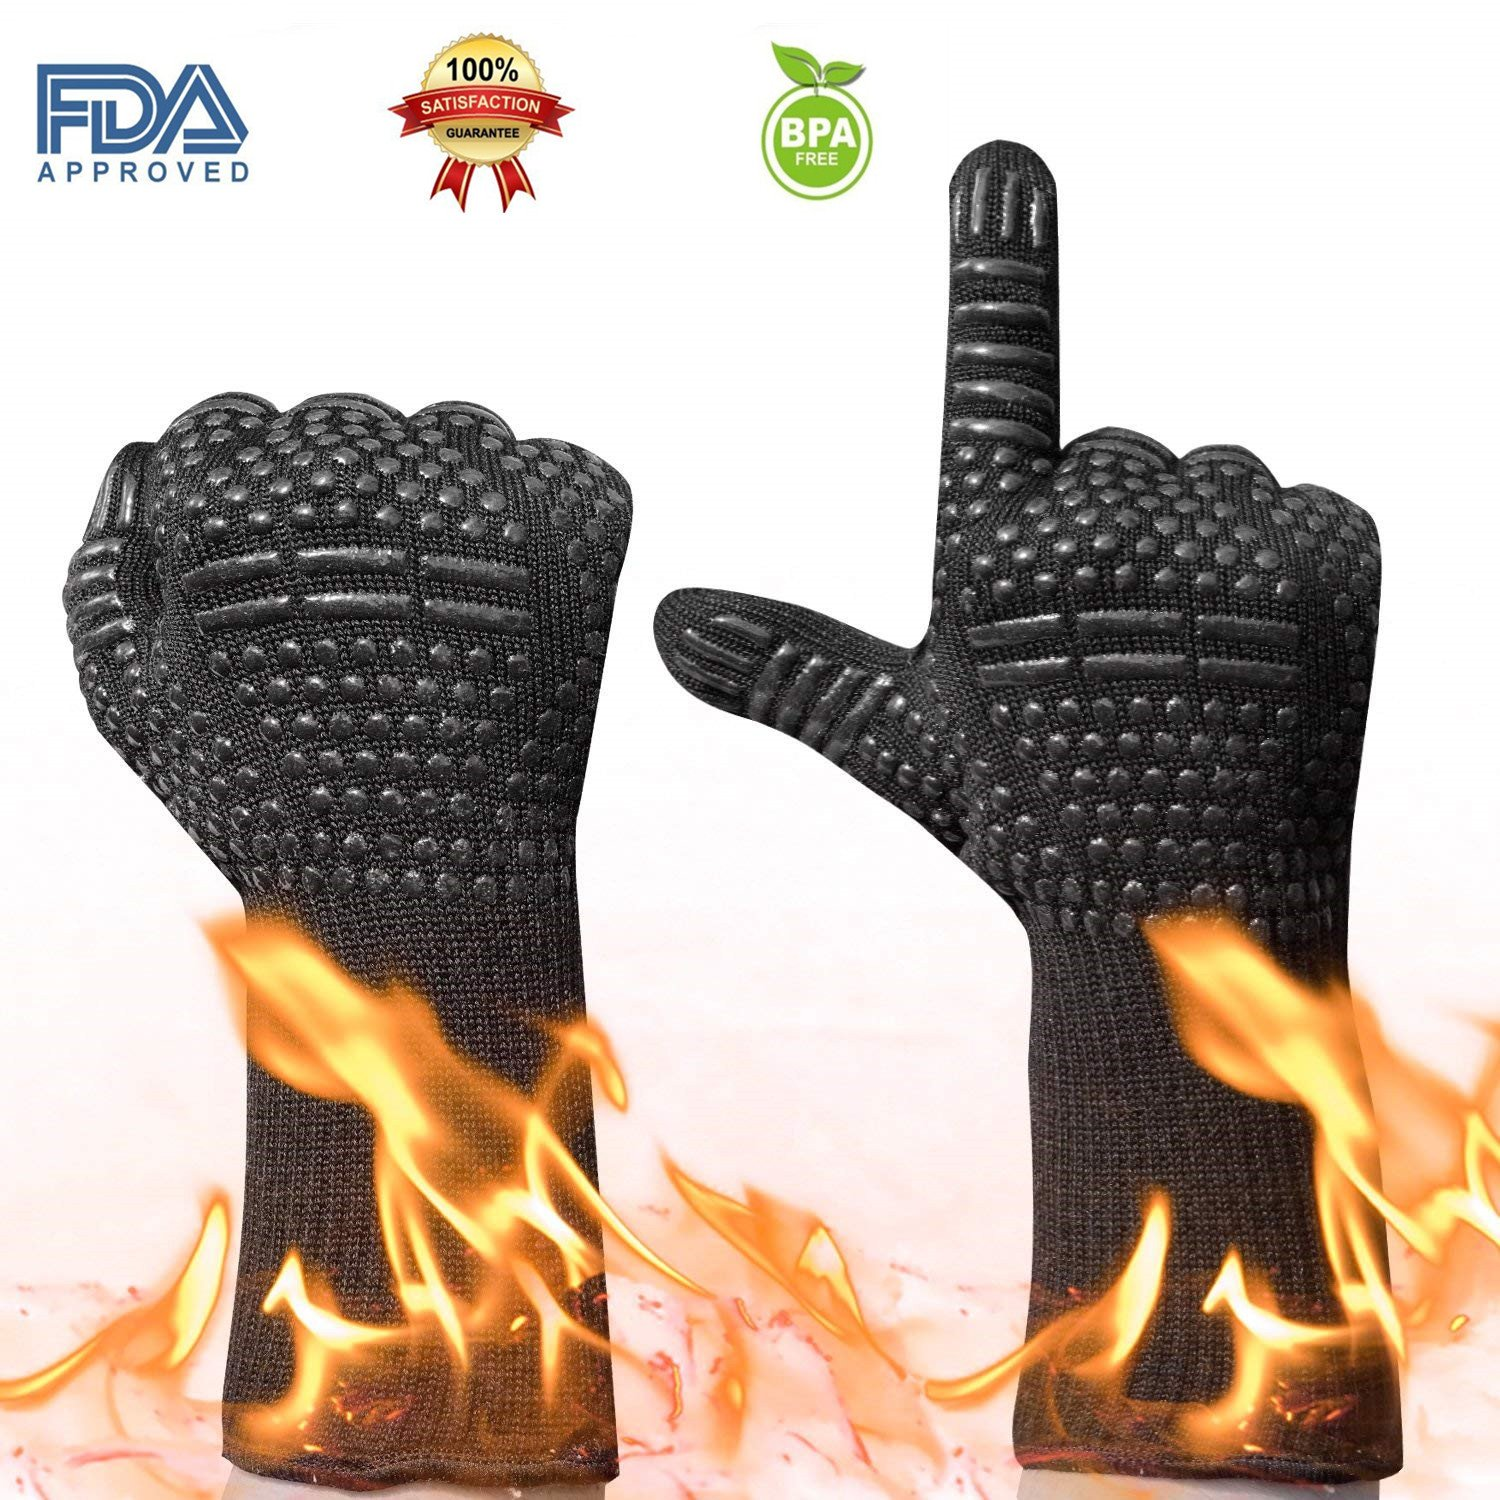 SengVan Oven Mitts Grill Gloves Extreme Heat Resistant with Fingers for Grilling, Cooking, Baking